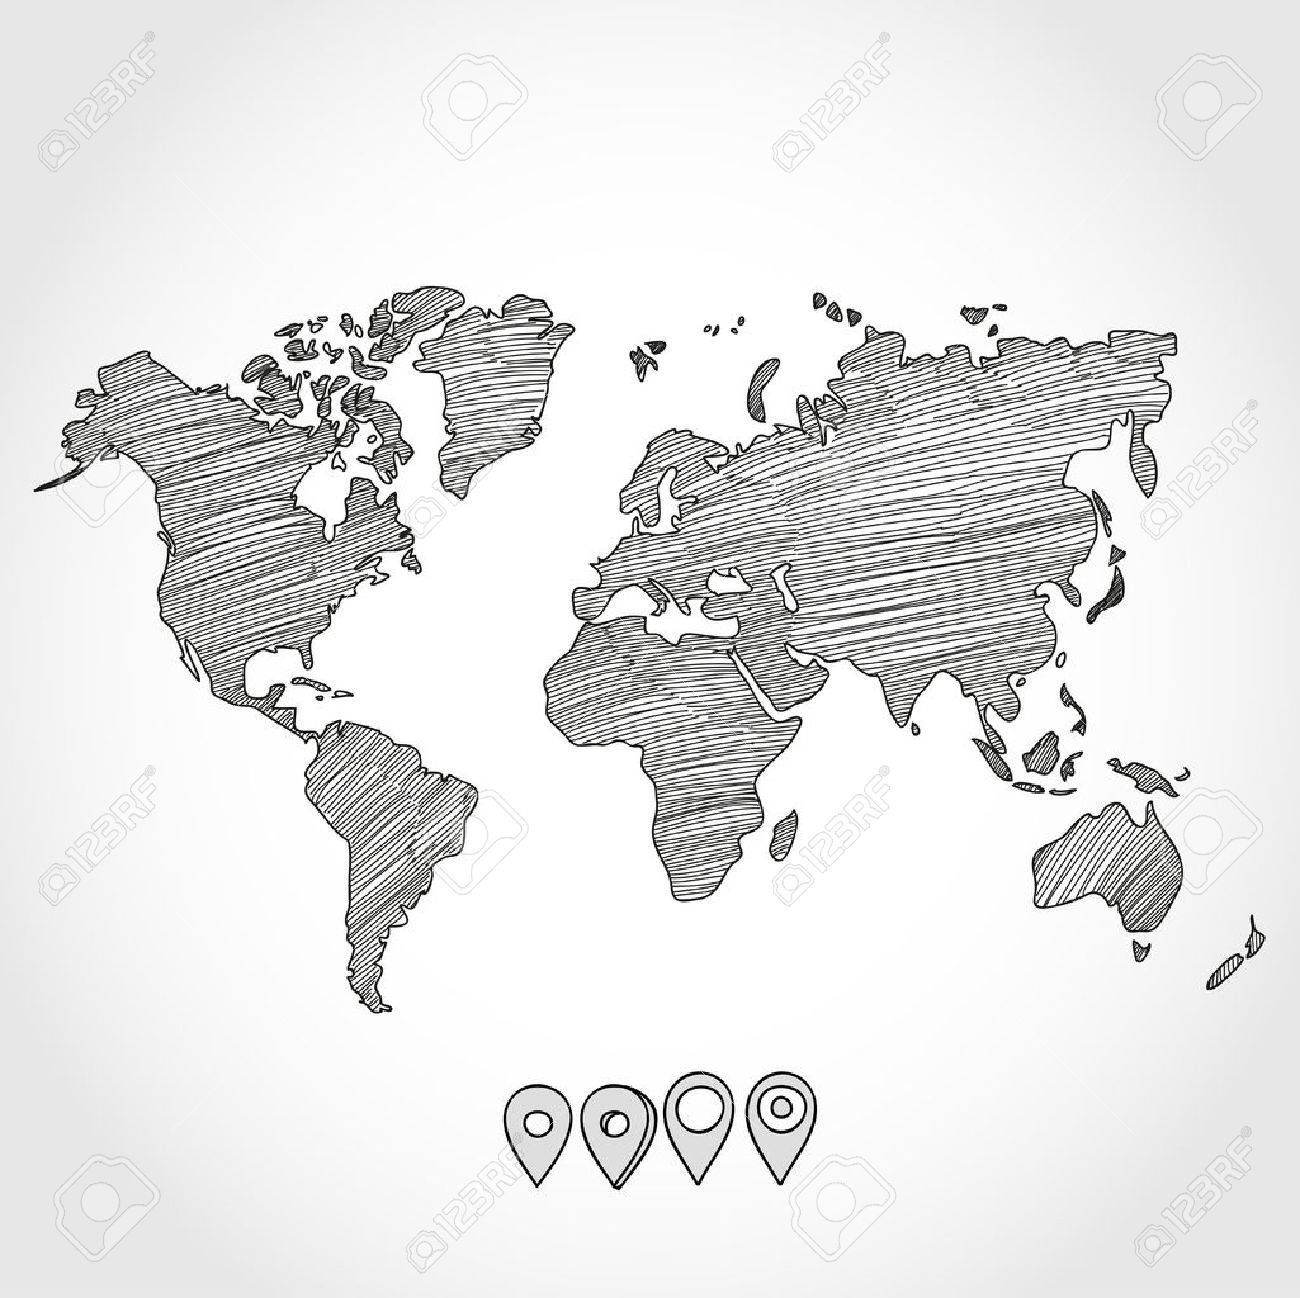 Hand Drawn Map Of The World.Hand Drawn Doodle Sketch Political World Map And Geo Tag Pin